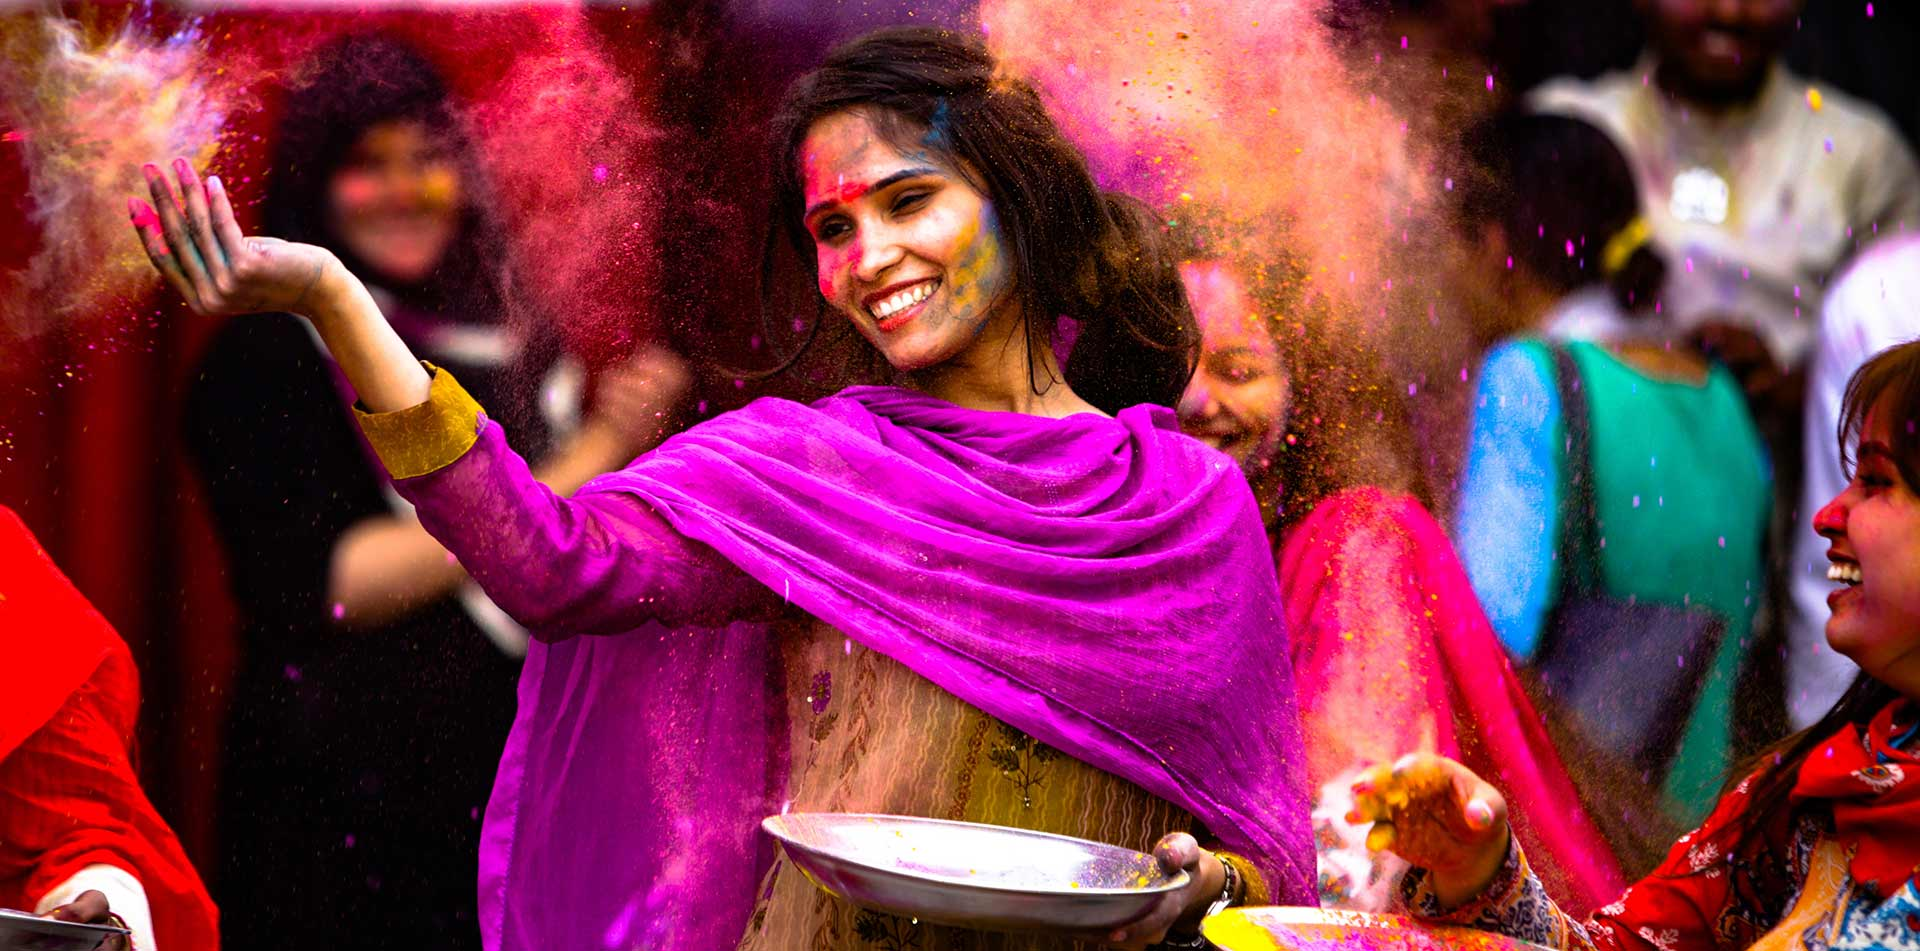 Asia India woman throwing powder dye to celebrate Holi Festival - luxury vacation destinations